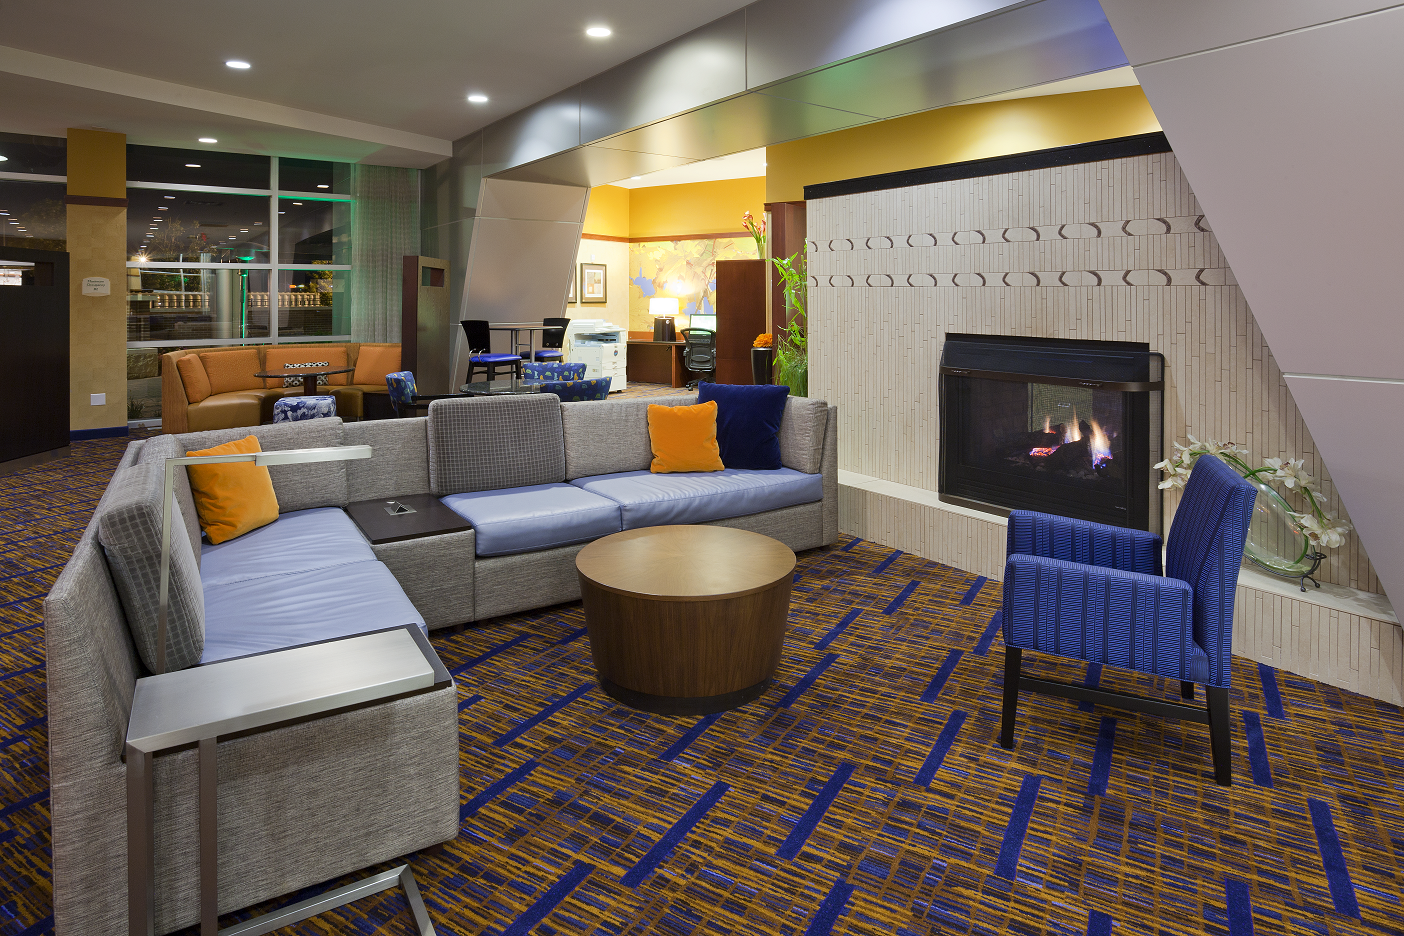 Lobby seating area in a hotel